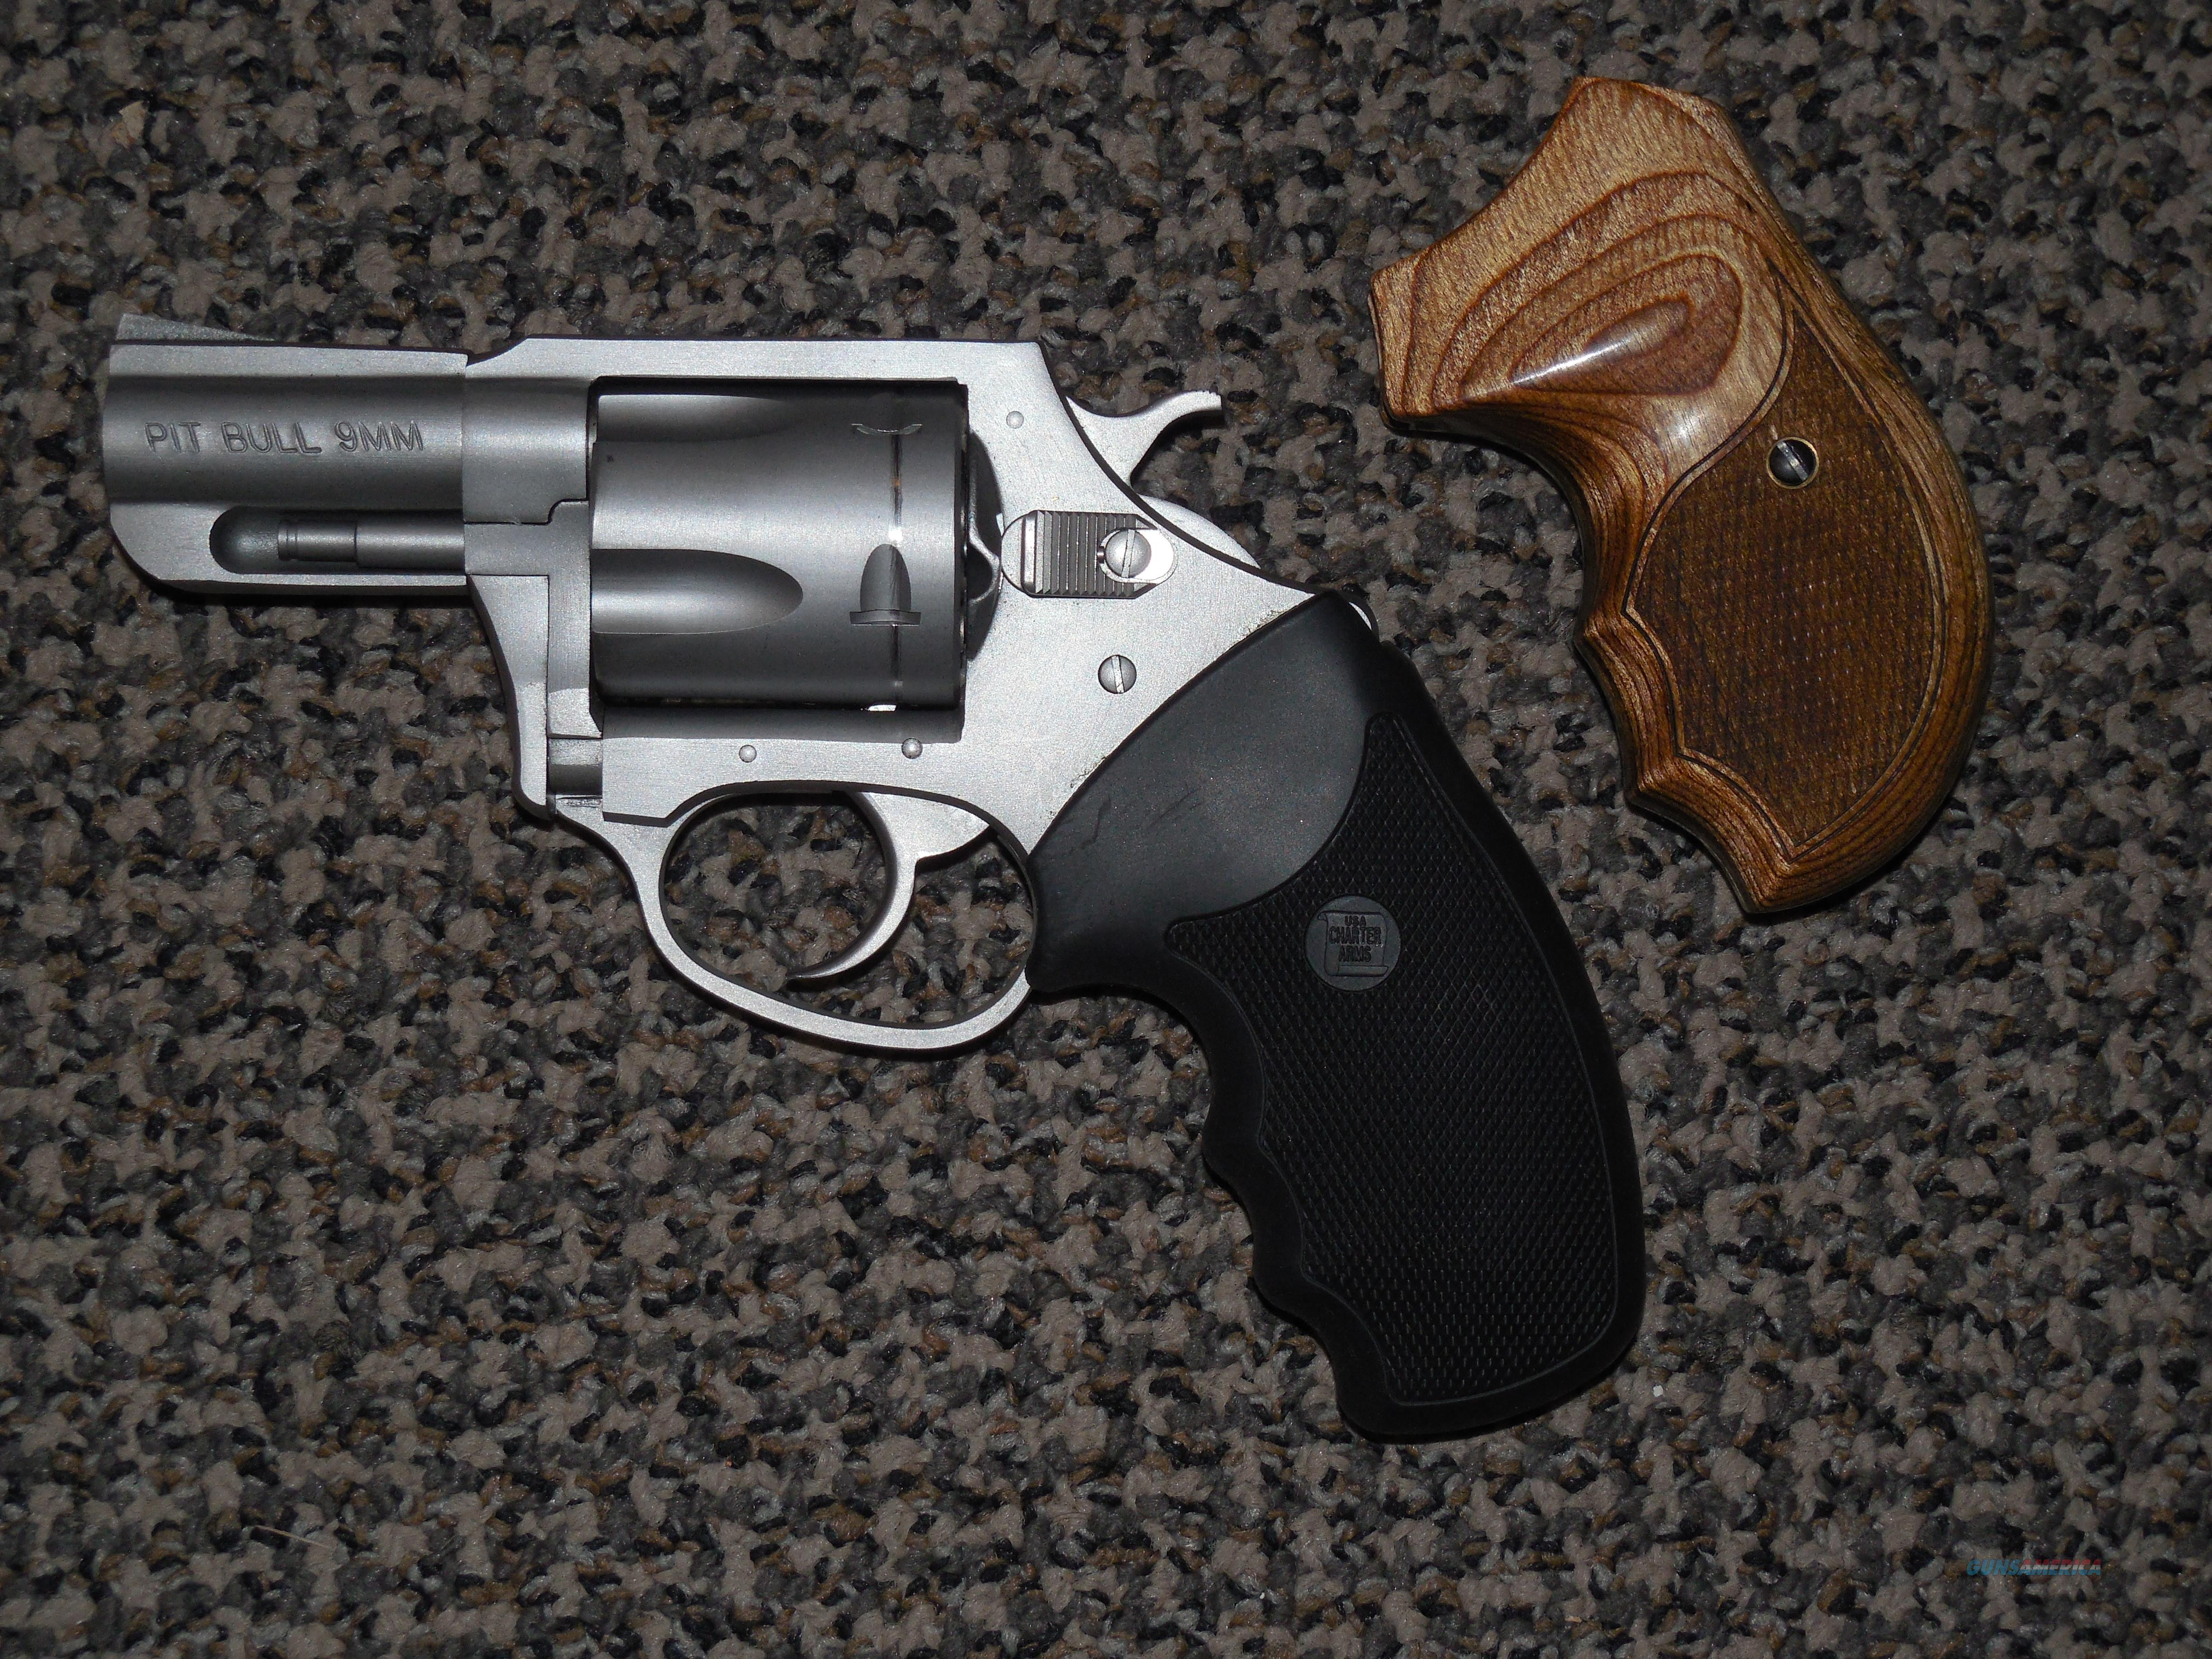 CHARTER ARMS PITBULL 9 MM STAINLESS REVOLVER WITH EXTRA GRIP  Guns > Pistols > Charter Arms Revolvers